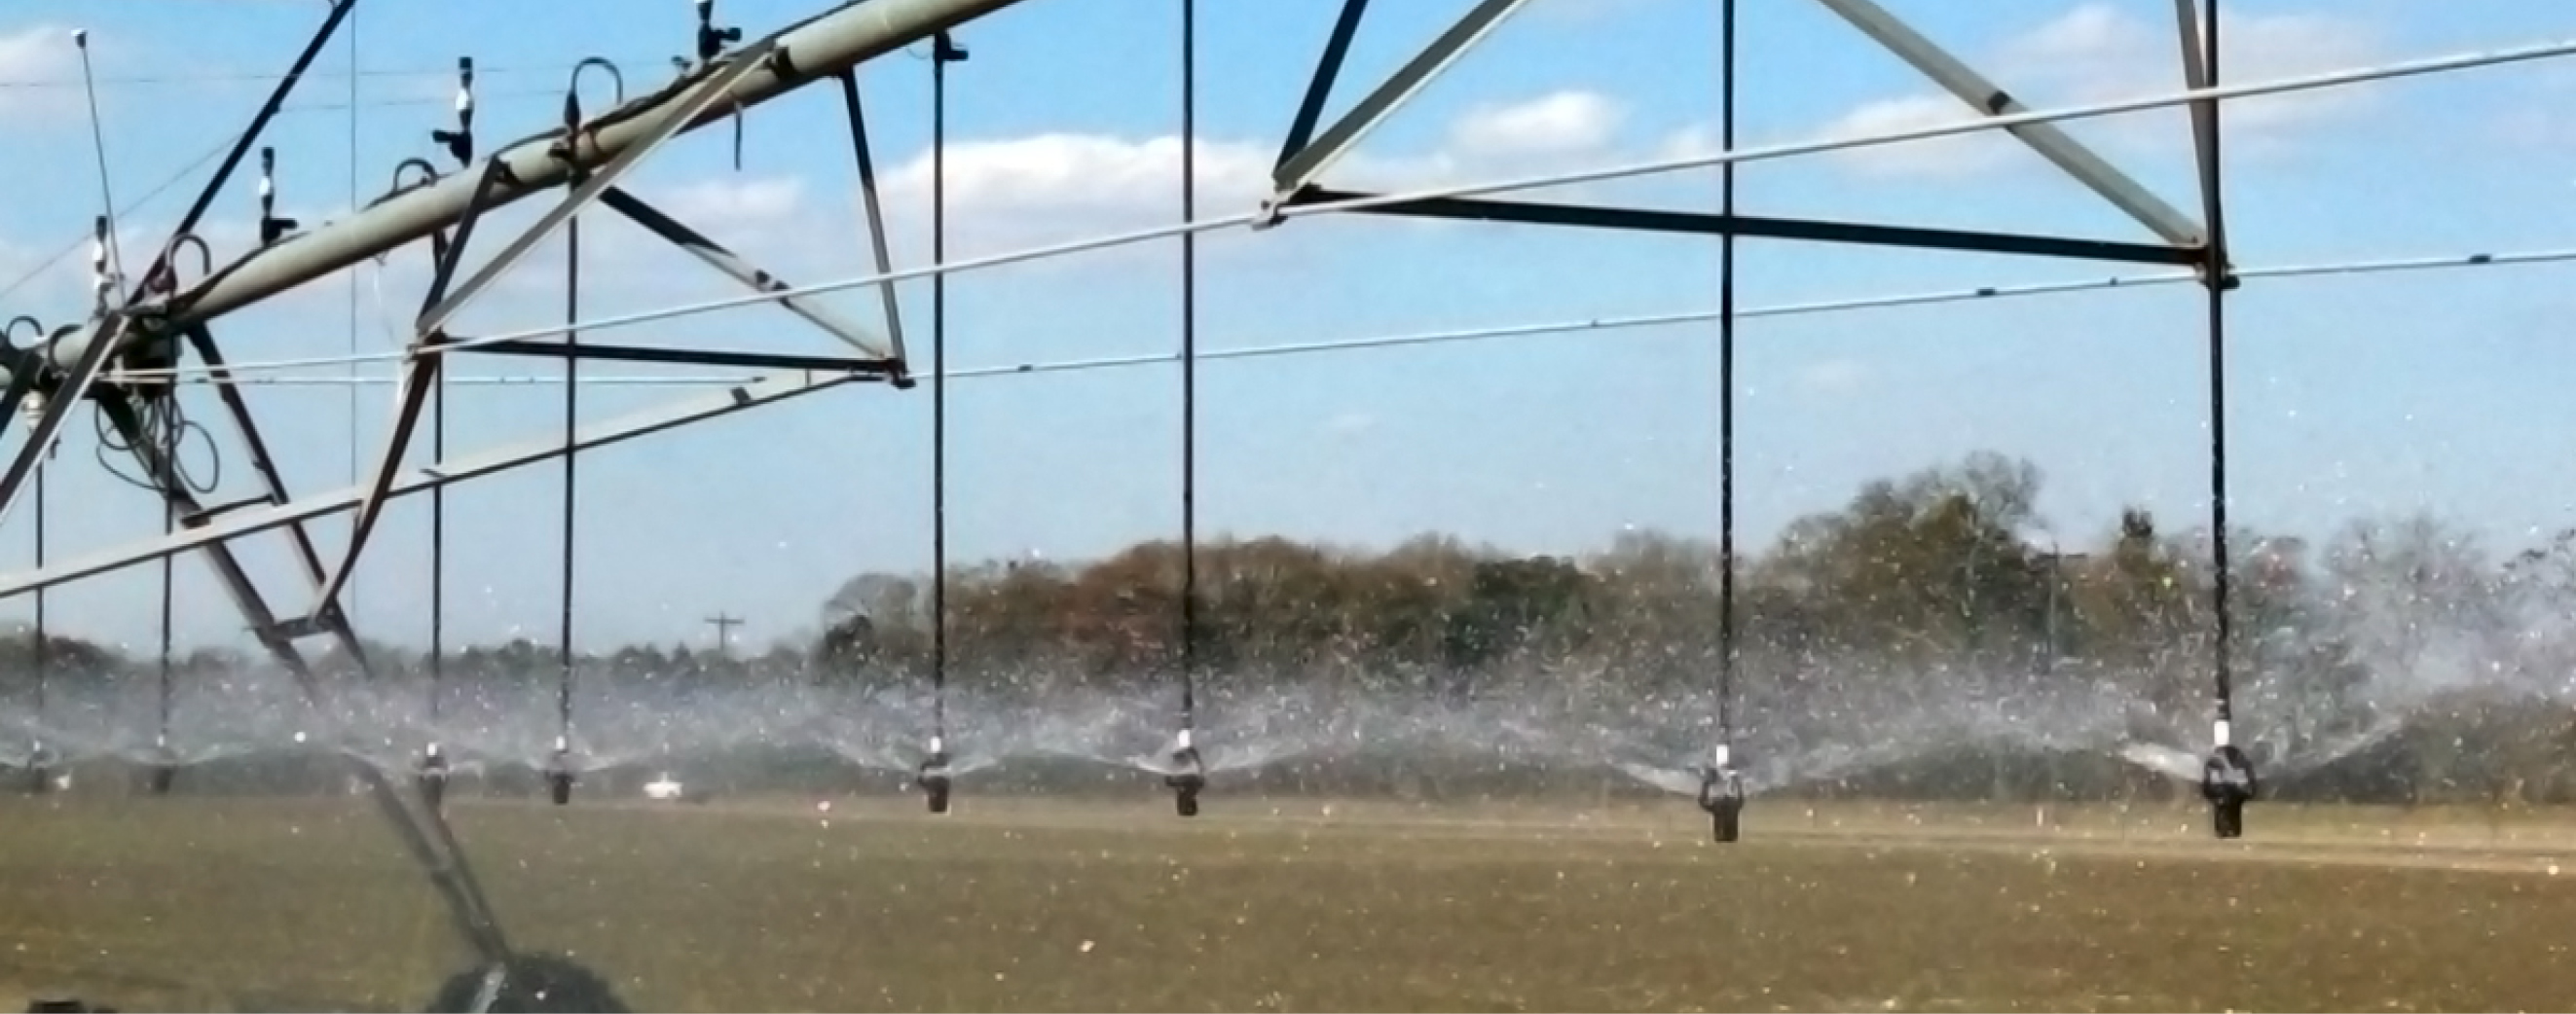 Spring Center Pivot and Lateral Irrigation System Preparation